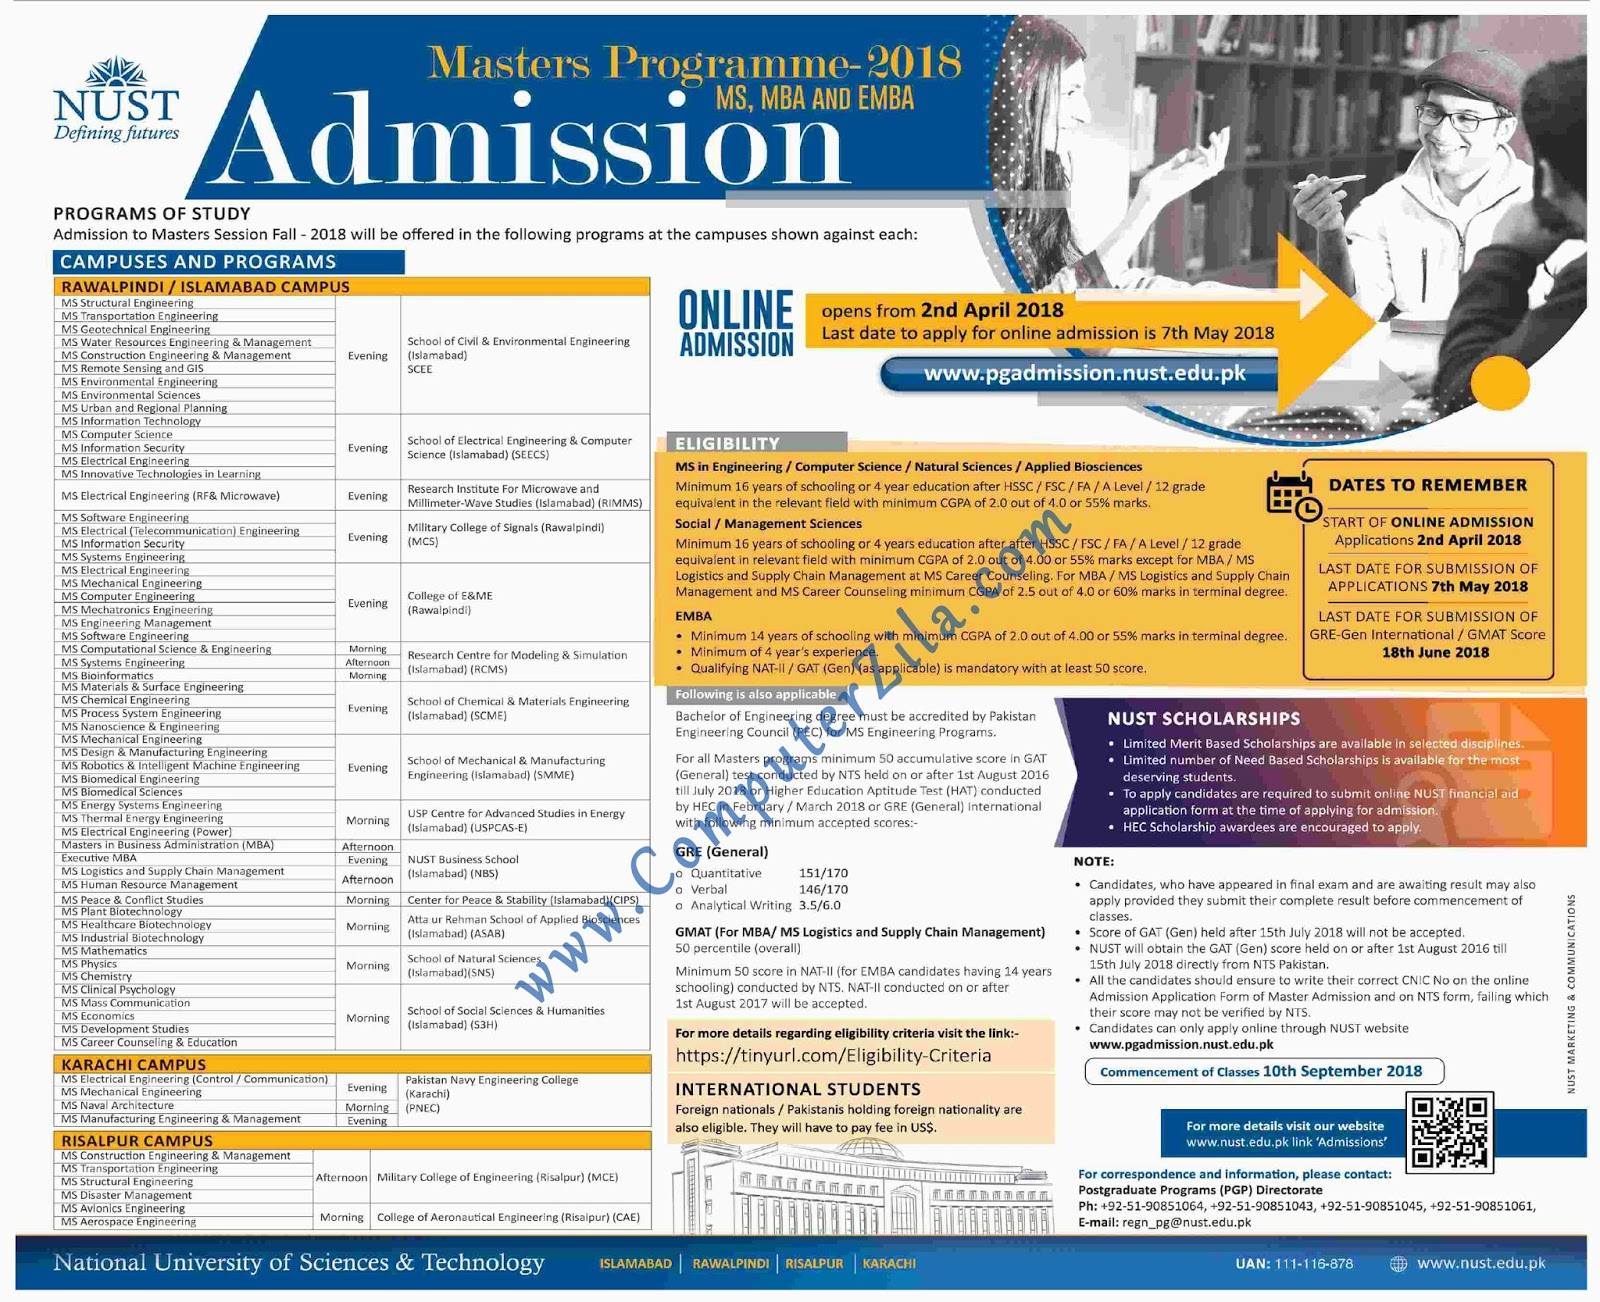 NUST Admissions Fall 2018 - Computer Zila